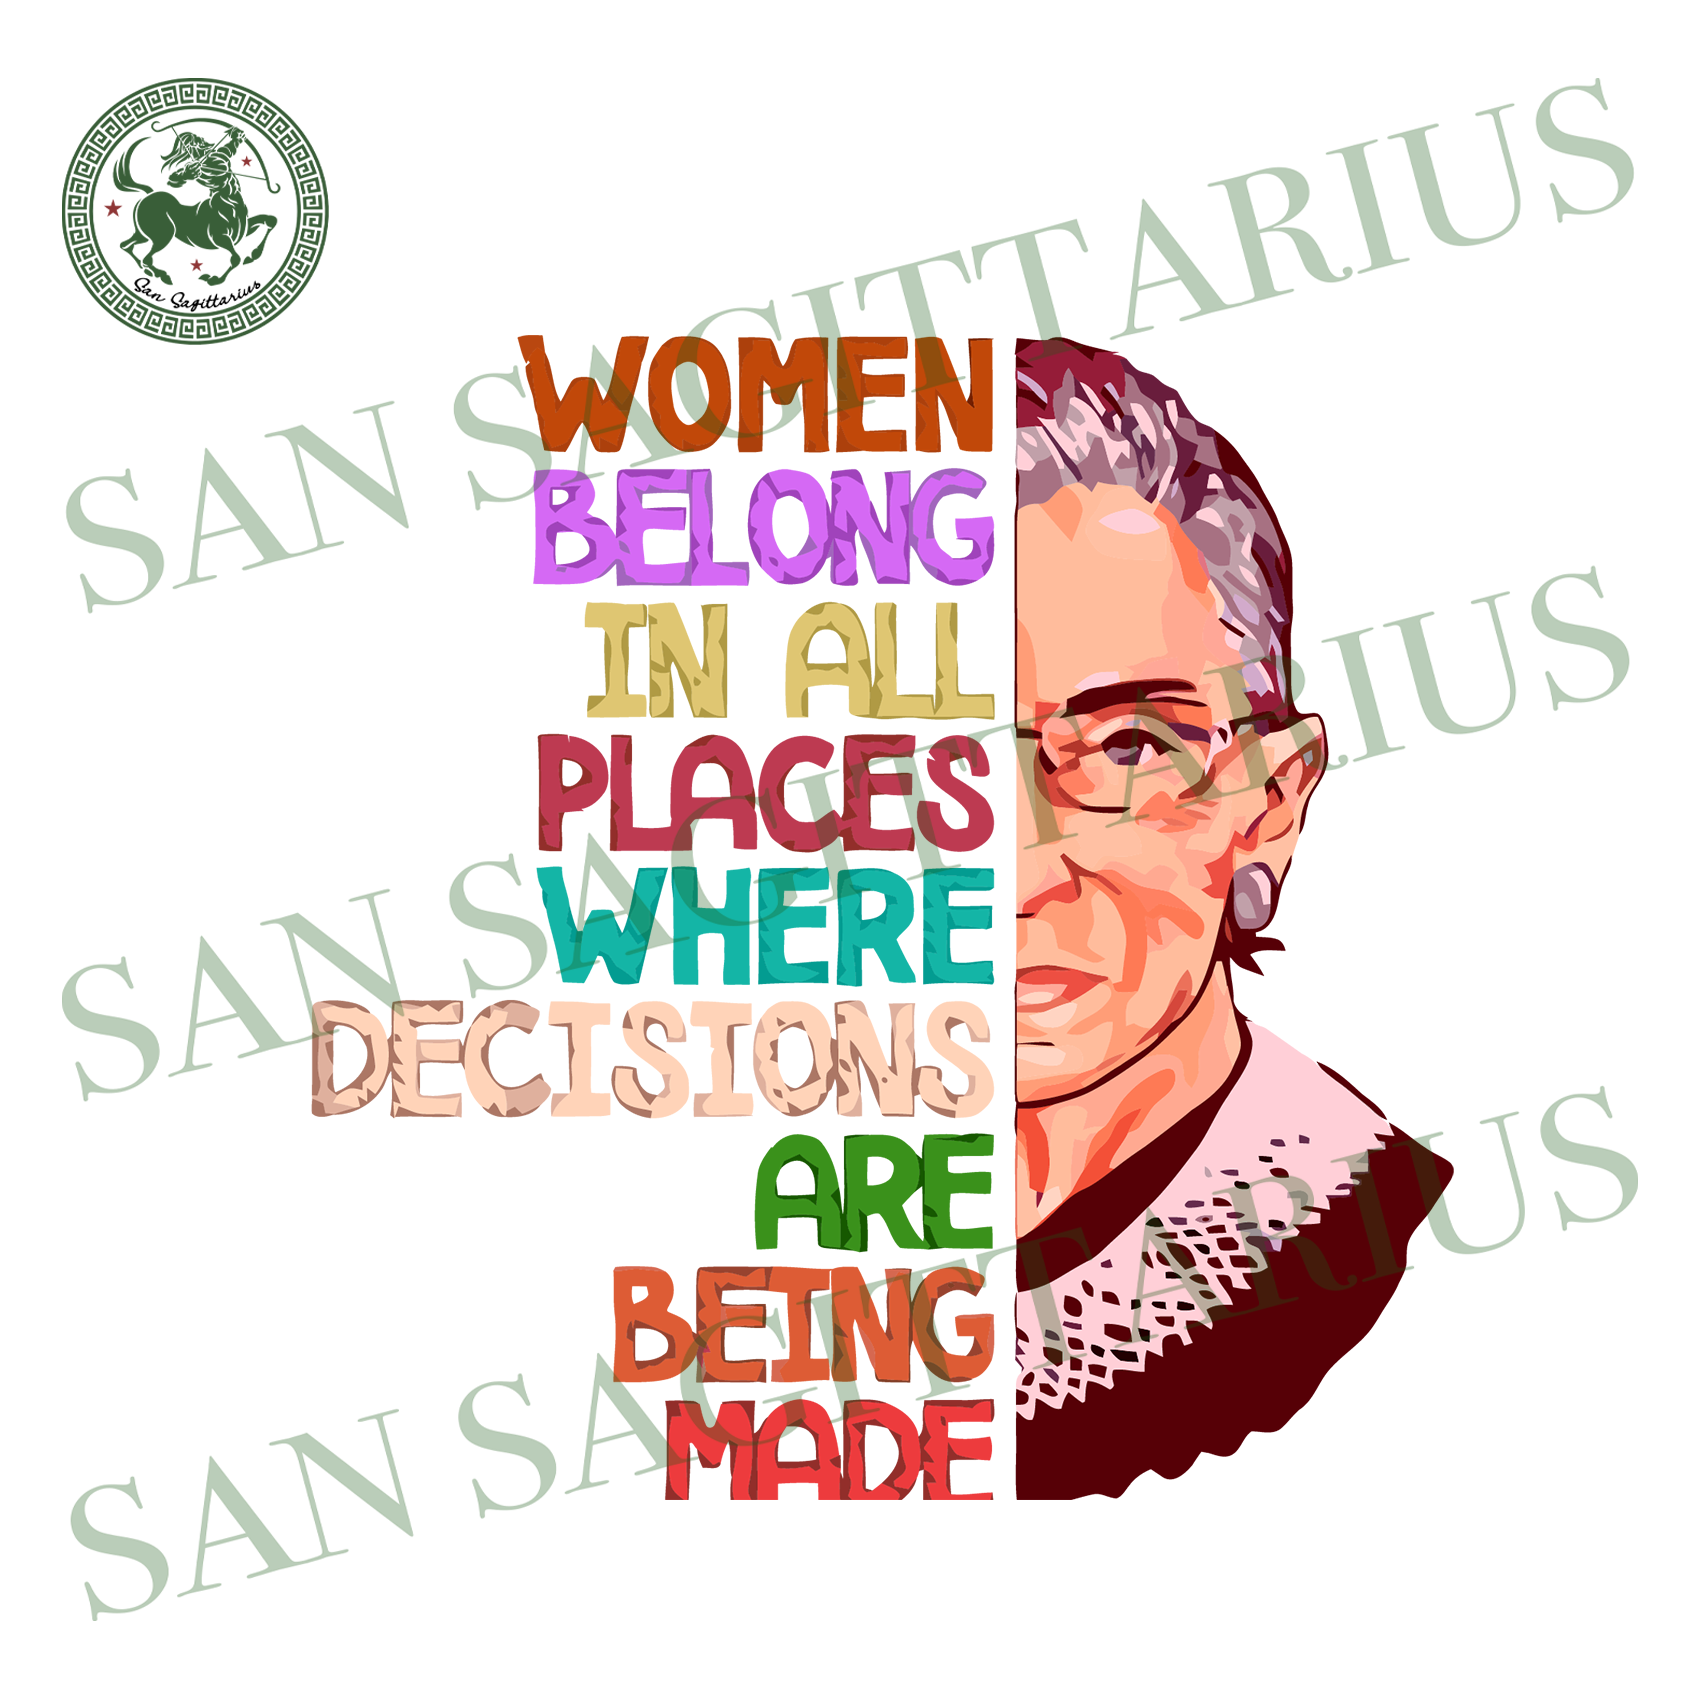 Women Belong In All Places Svg,Decisions Are Being Made Svg,Womens Political Gifts,Vintage Ruth Bader Ginsburg Svg,Human Rights, Queen Crown Supreme Court,Trending 2020 Svg